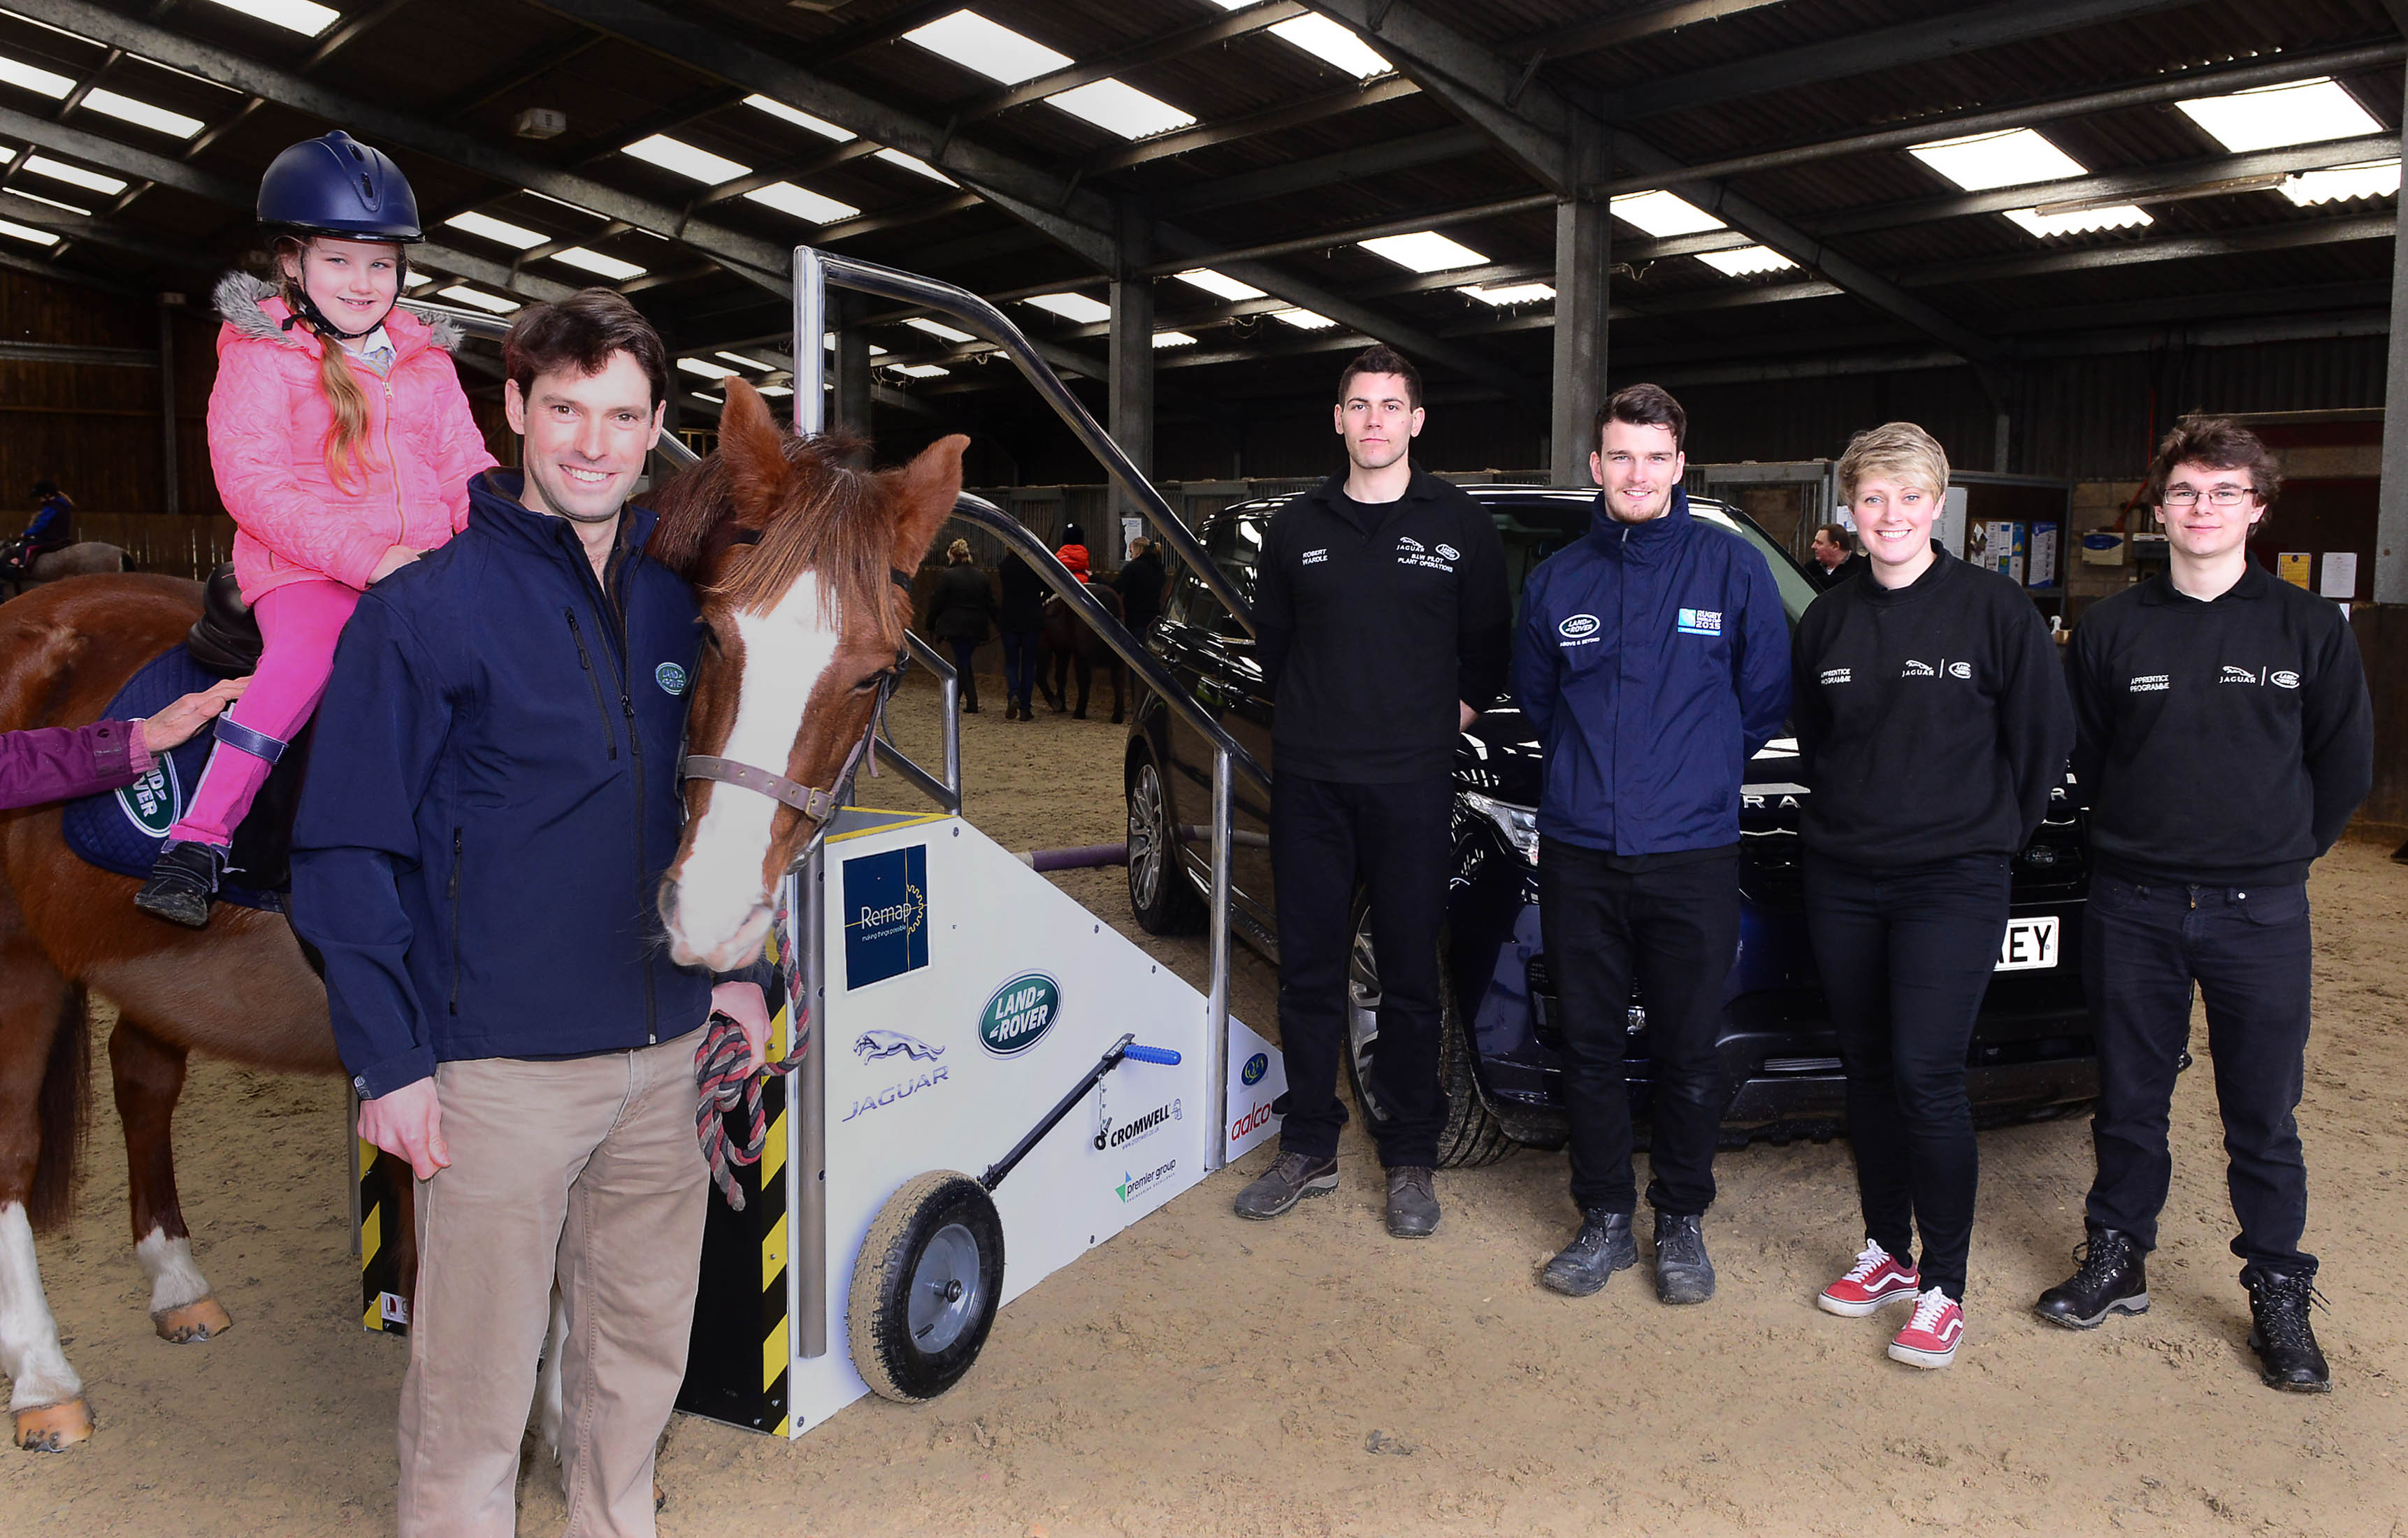 Harry Meade with Keely and JLR Apprentices